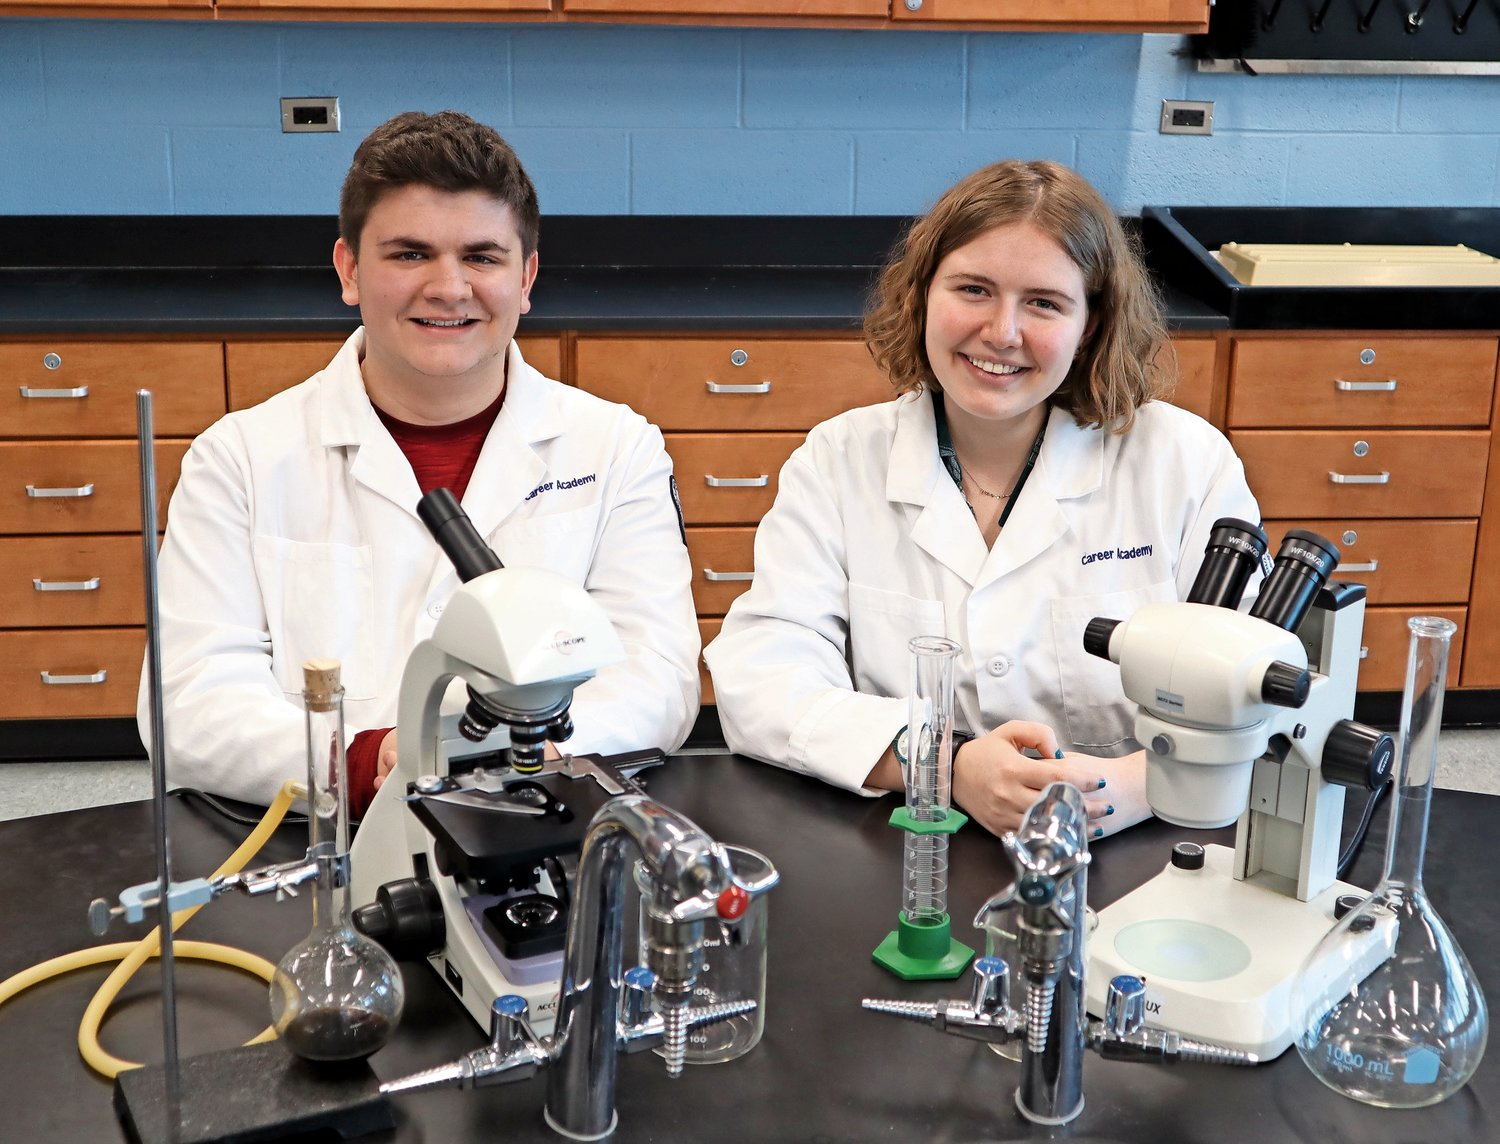 Katherine St George, right, came in sixth place in the Science Talent Search competition. Andrew Brinton and St George are only the fifth and sixth students from John F. Kennedy High School to be named finalists in the prestigious competition.